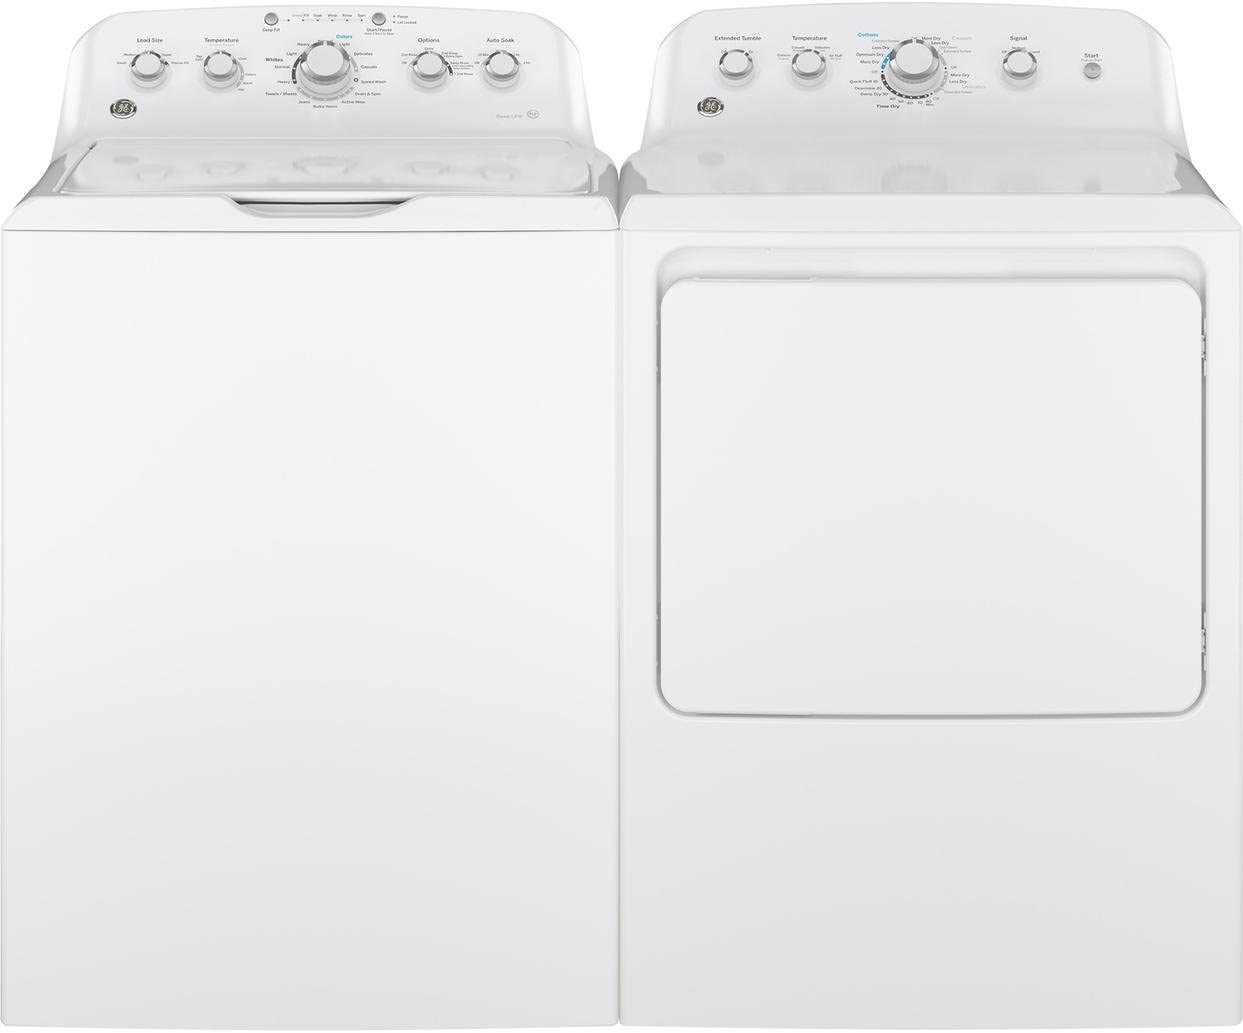 """GE White Top Load Laundry Pair with GTW460ASJWW 27"""""""" Washer and GTD42GASJWW 27"""""""" Gas Dryer"""